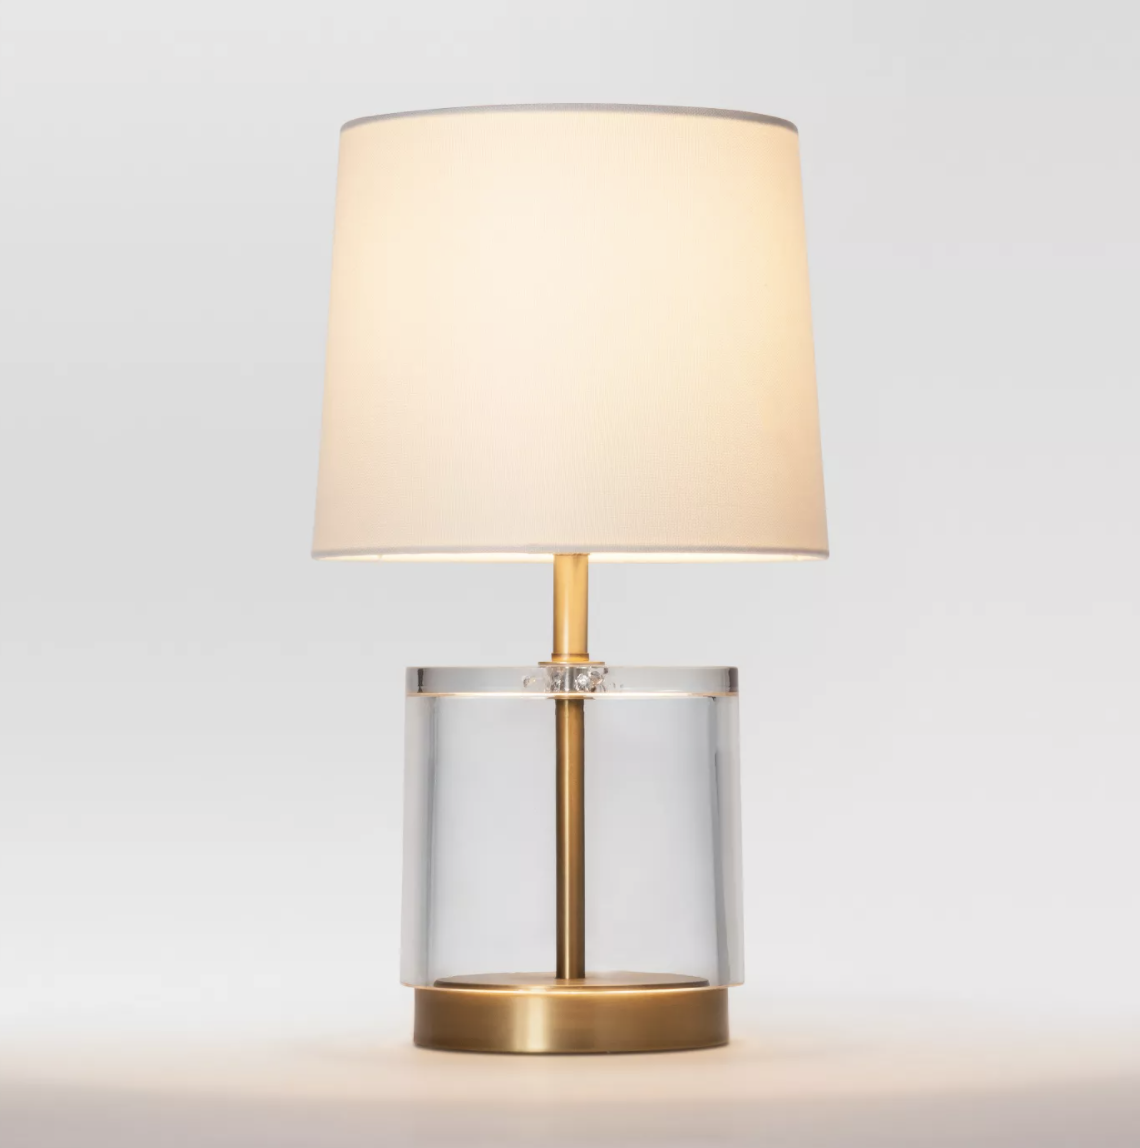 the acrylic and brass table lamp with a beige lampshade